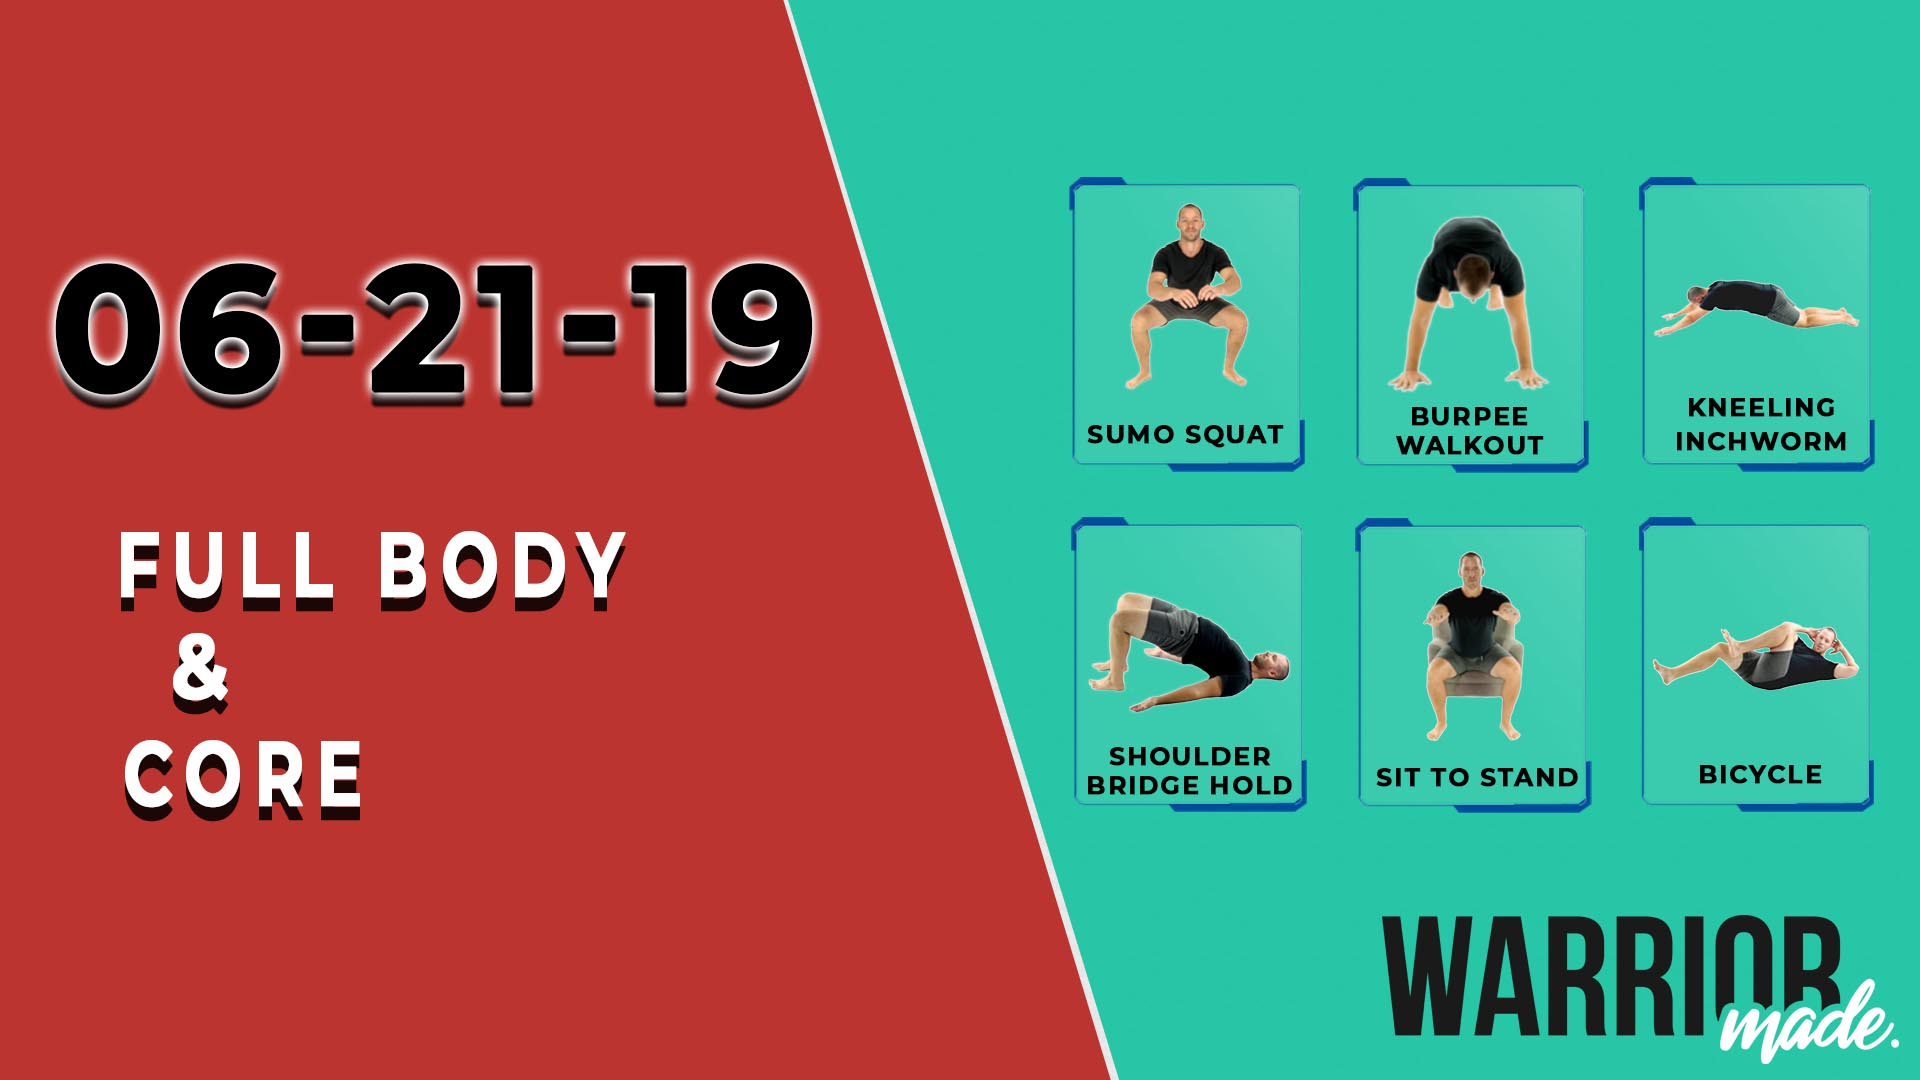 workouts-06-21-19